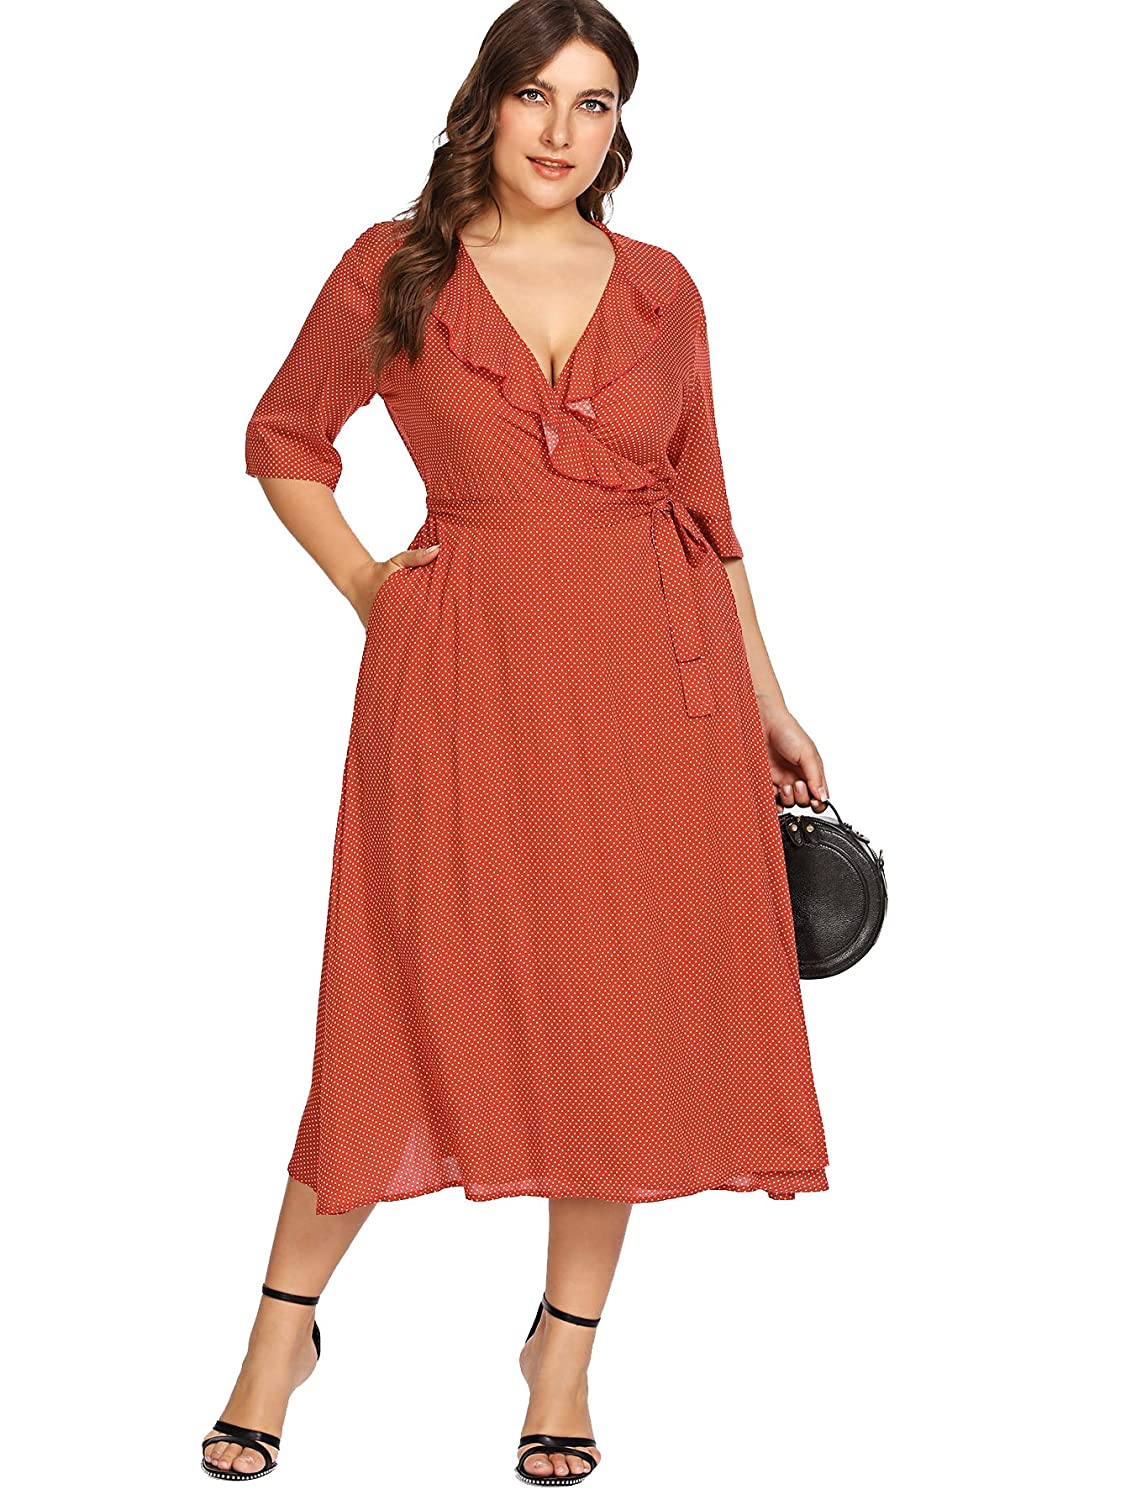 60s 70s Plus Size Dresses, Clothing, Costumes Milumia Plus Size Polka Dot Dress Pockets Ruffled Wrap V Neck Empire Waist Maxi Dress $25.99 AT vintagedancer.com